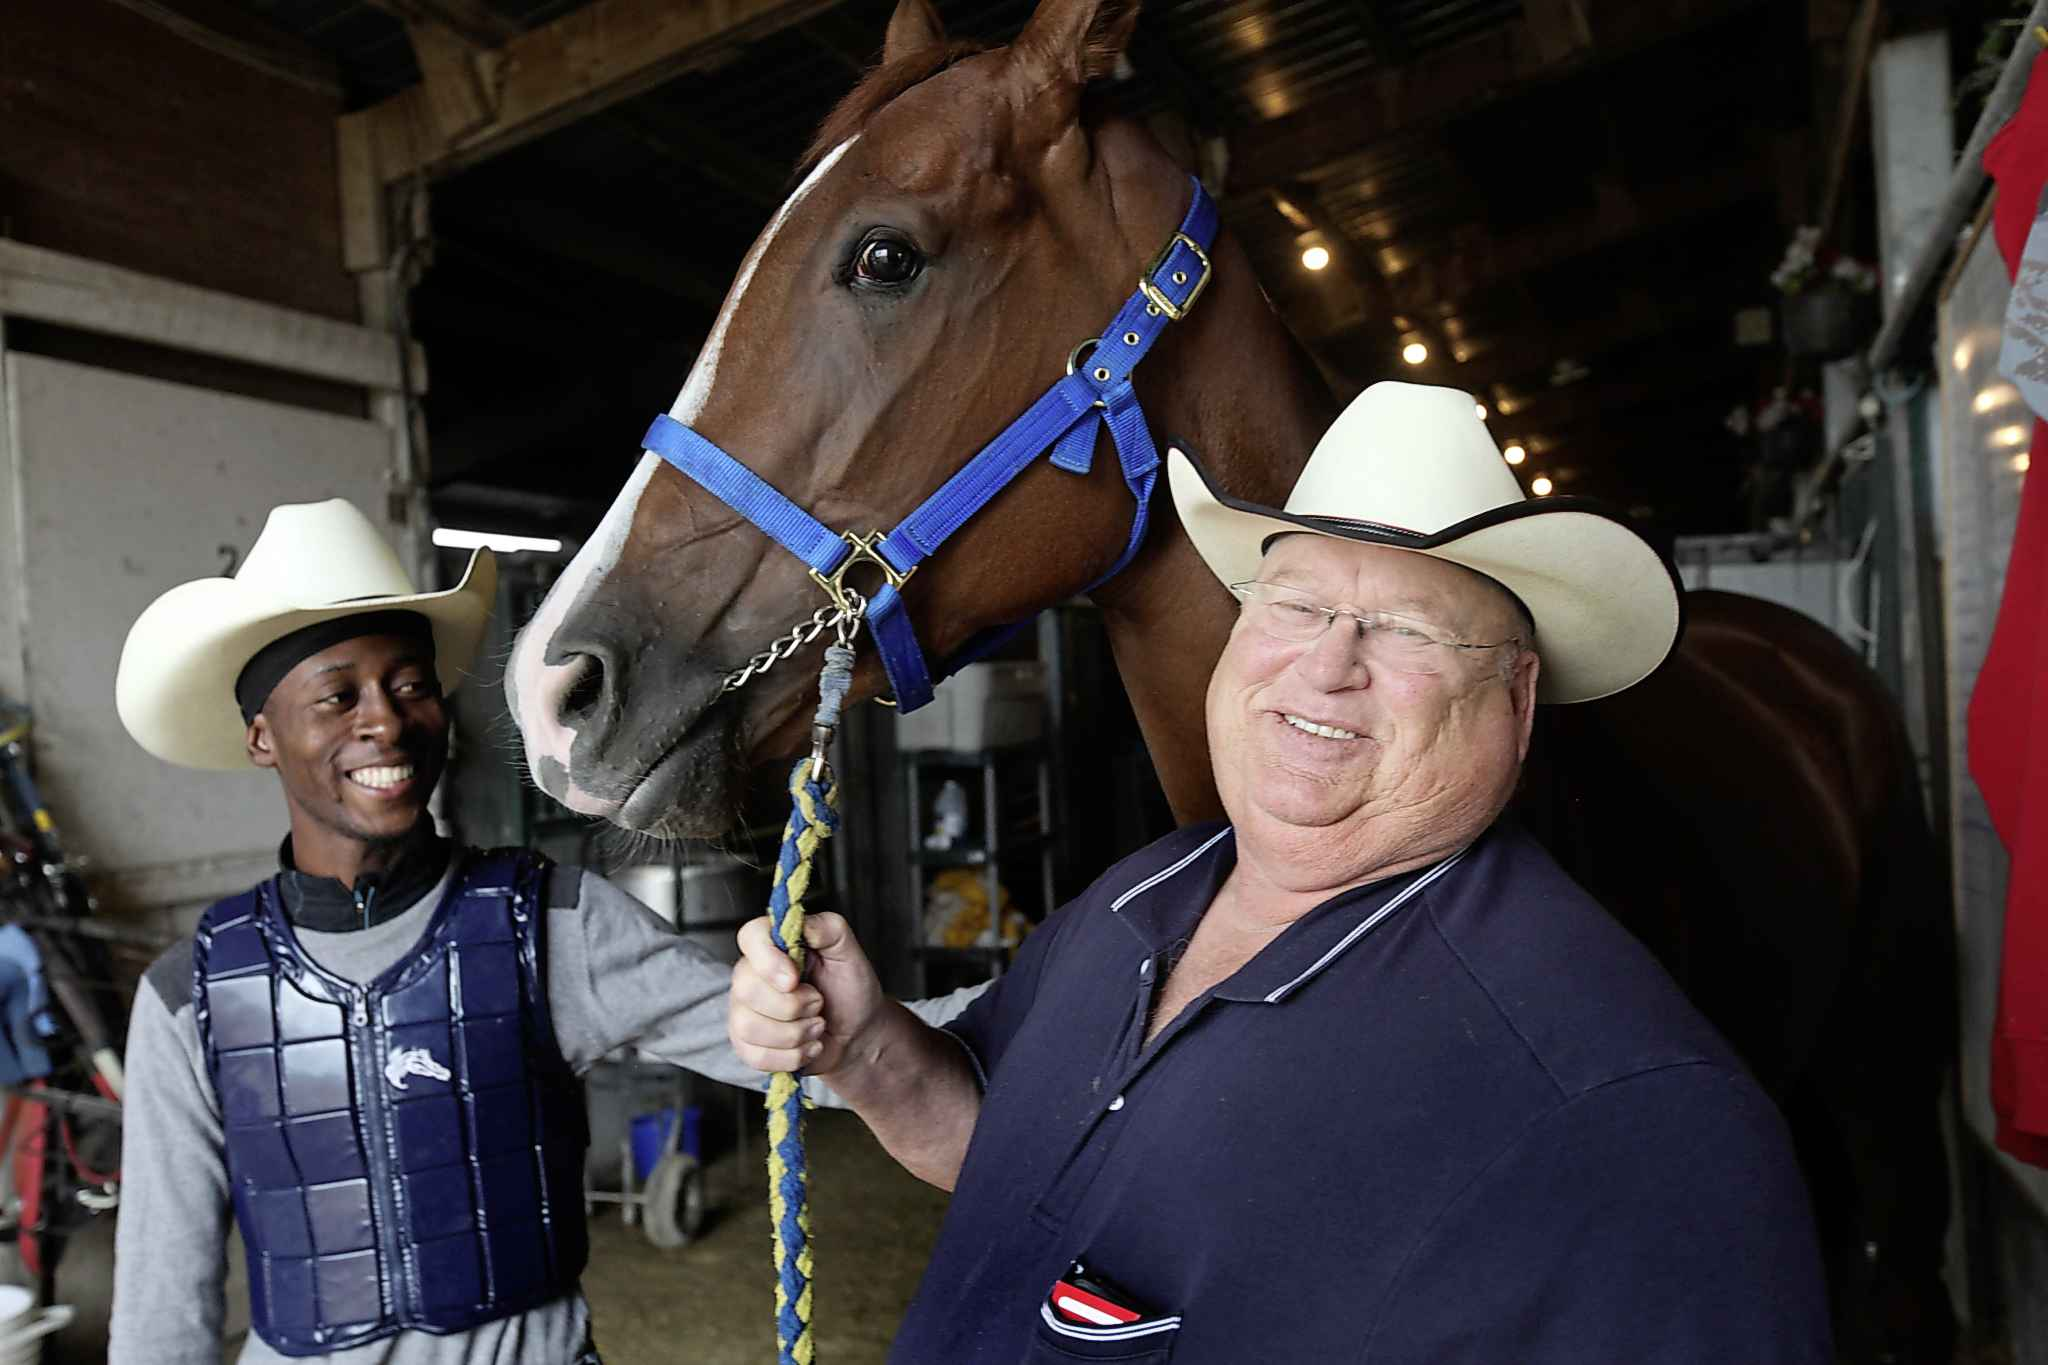 Horse Trainer Ardell Sayler (right) with horse Girl Boss and jockeyTyrone Nelson in the stables at Assiniboine Downs in 2016. Sayler, a legend in the local horse racing community, died Saturday from what's believed to be a heart attack at age 66.